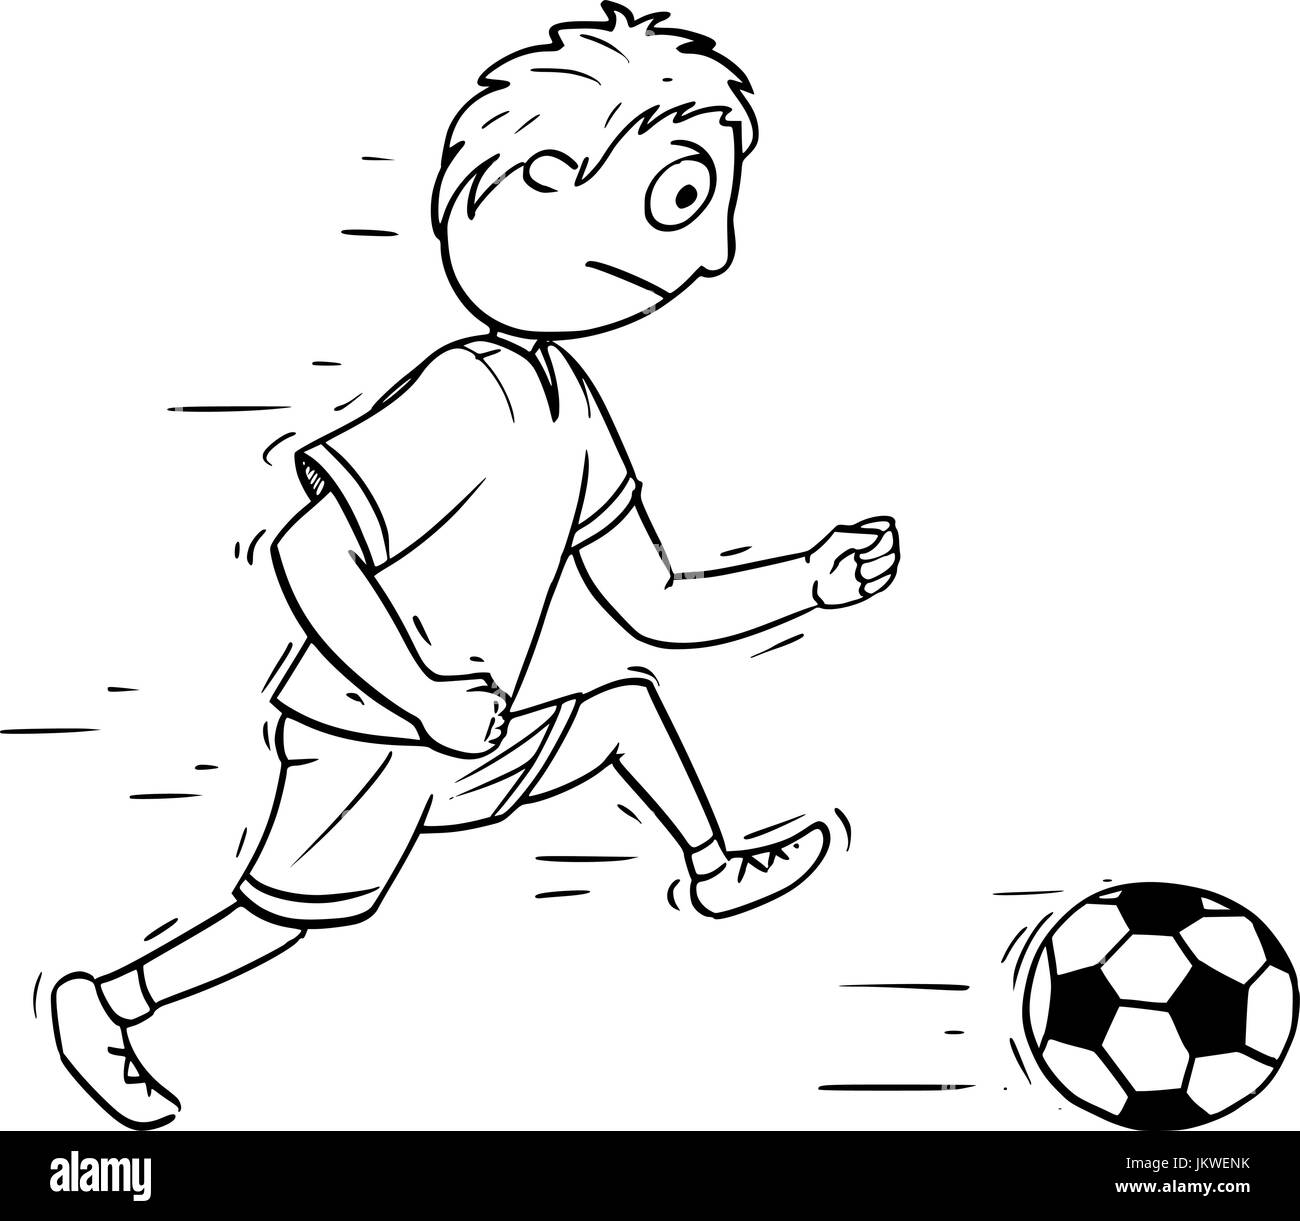 Hand drawing cartoon vector illustration of a boy playing Football Soccer with a ball. - Stock Vector